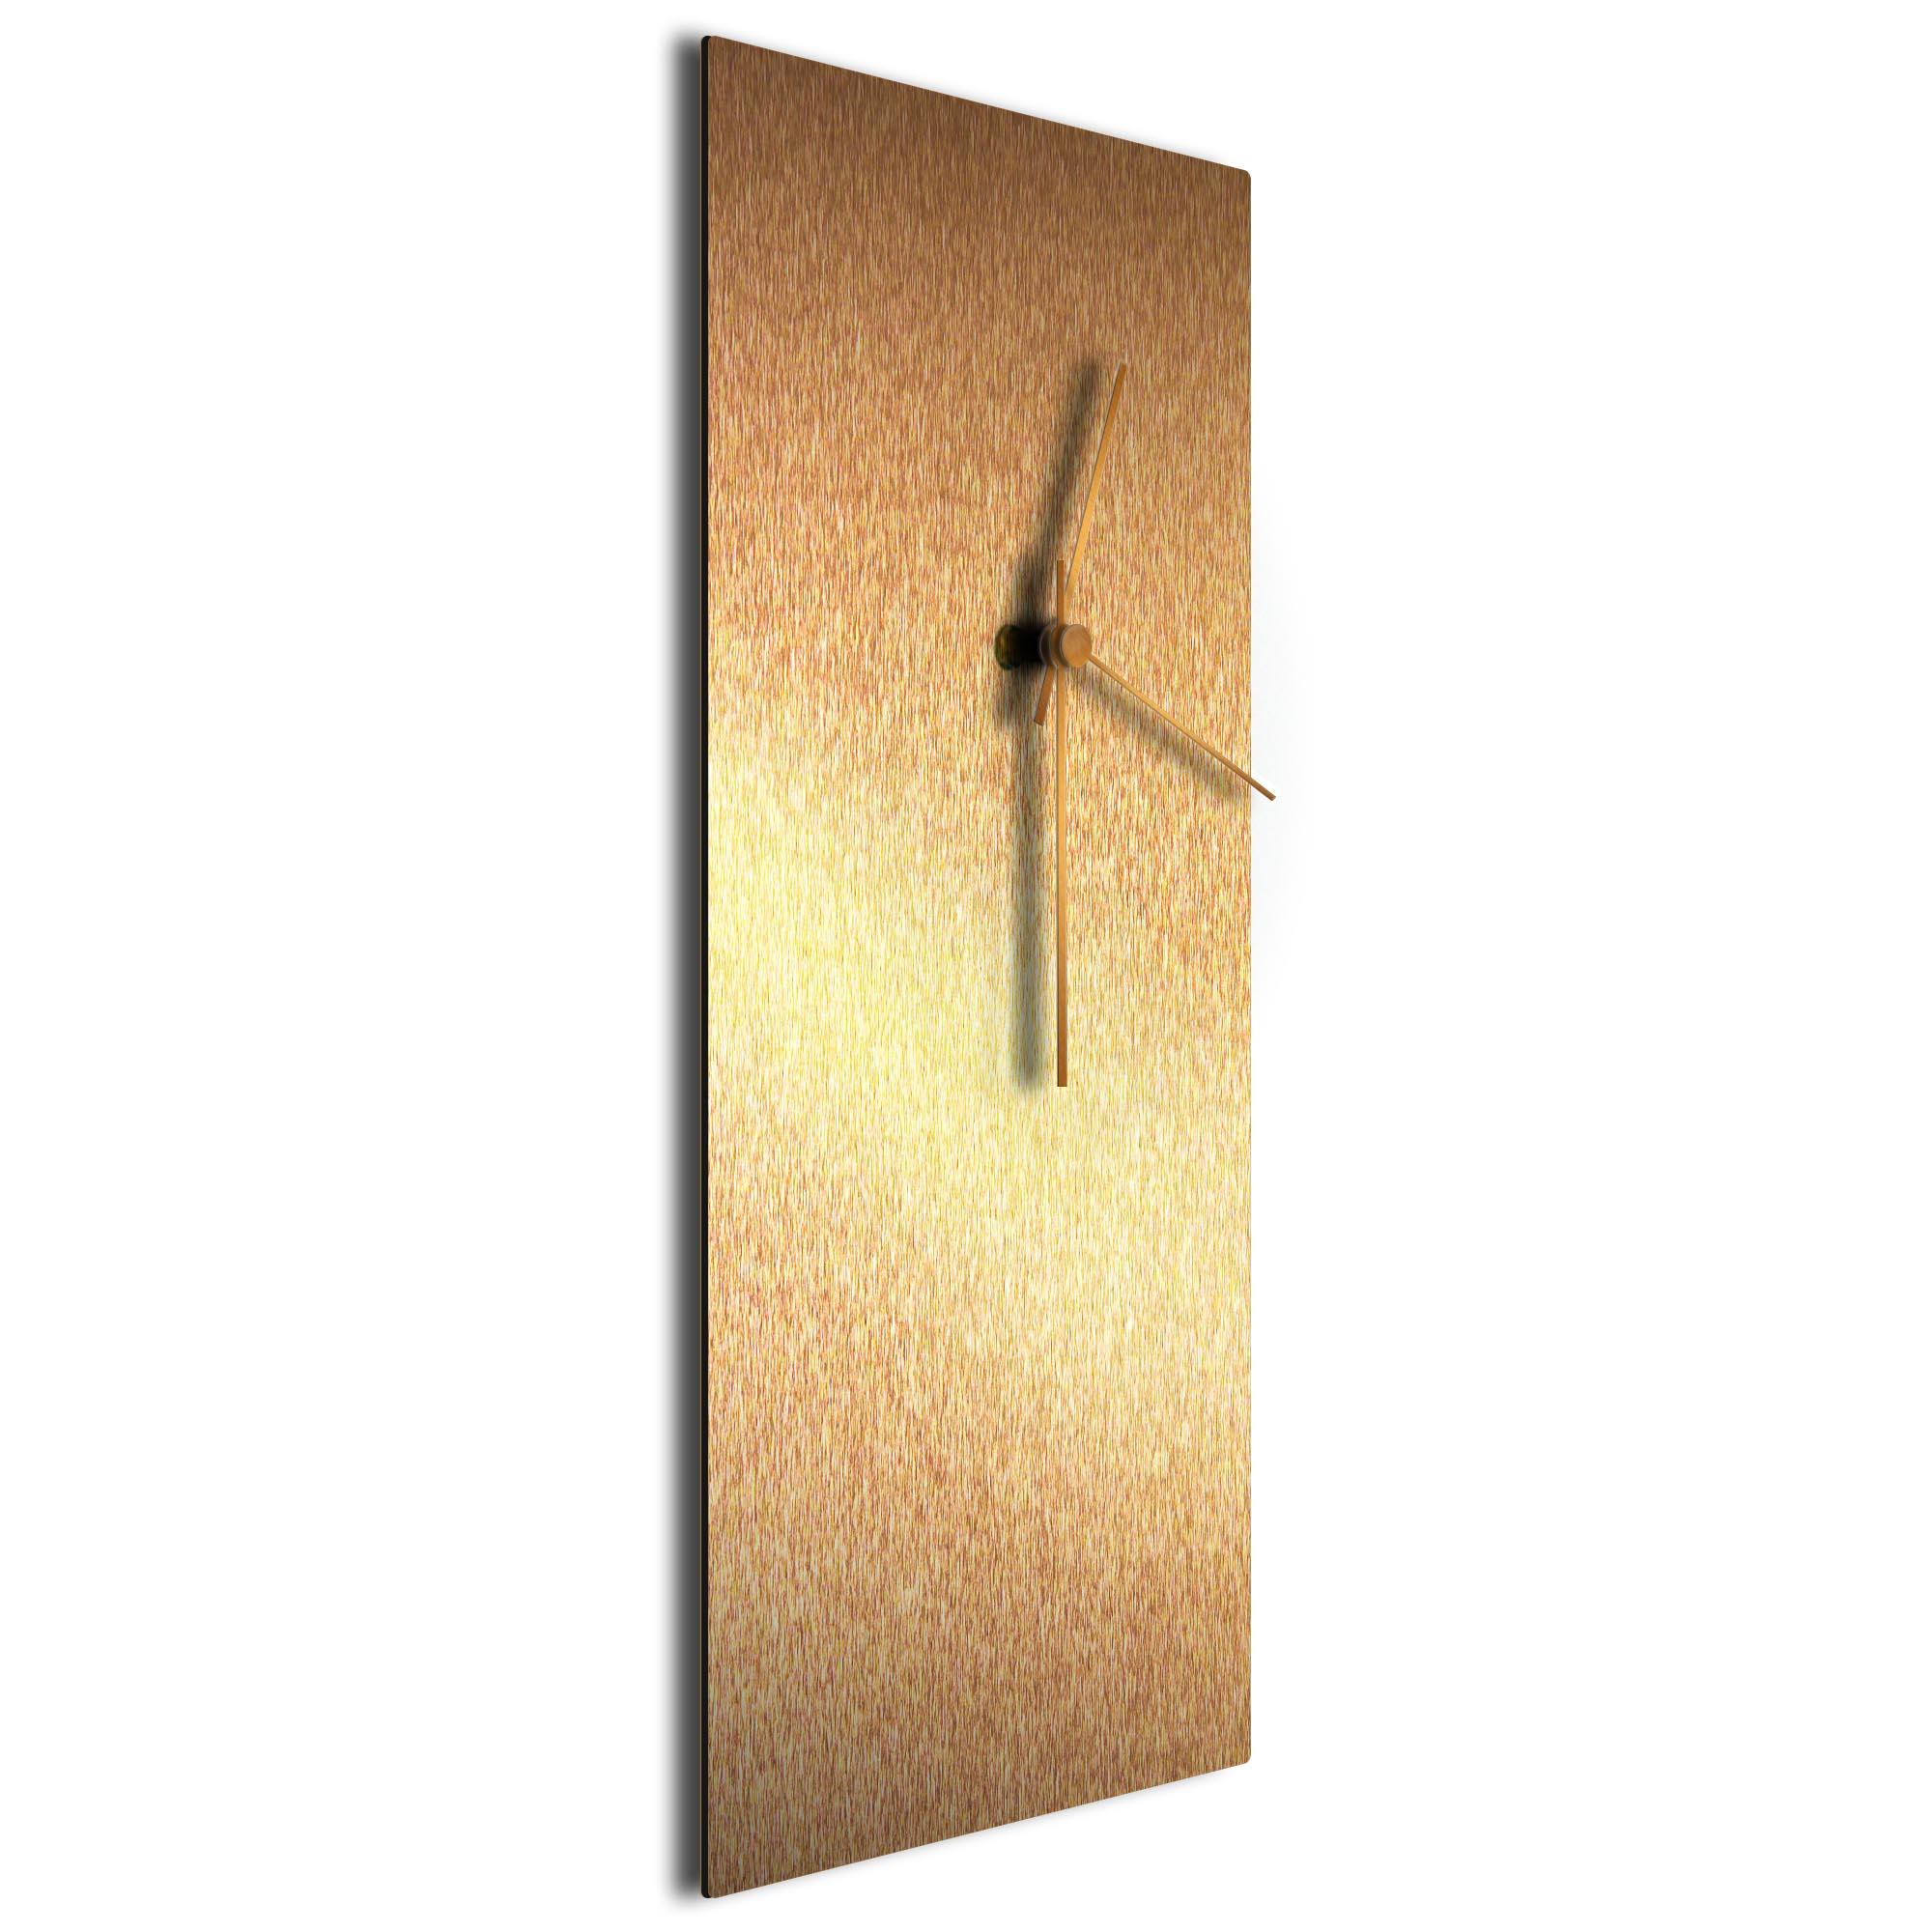 Bronzesmith Clock Large Bronze - Image 2